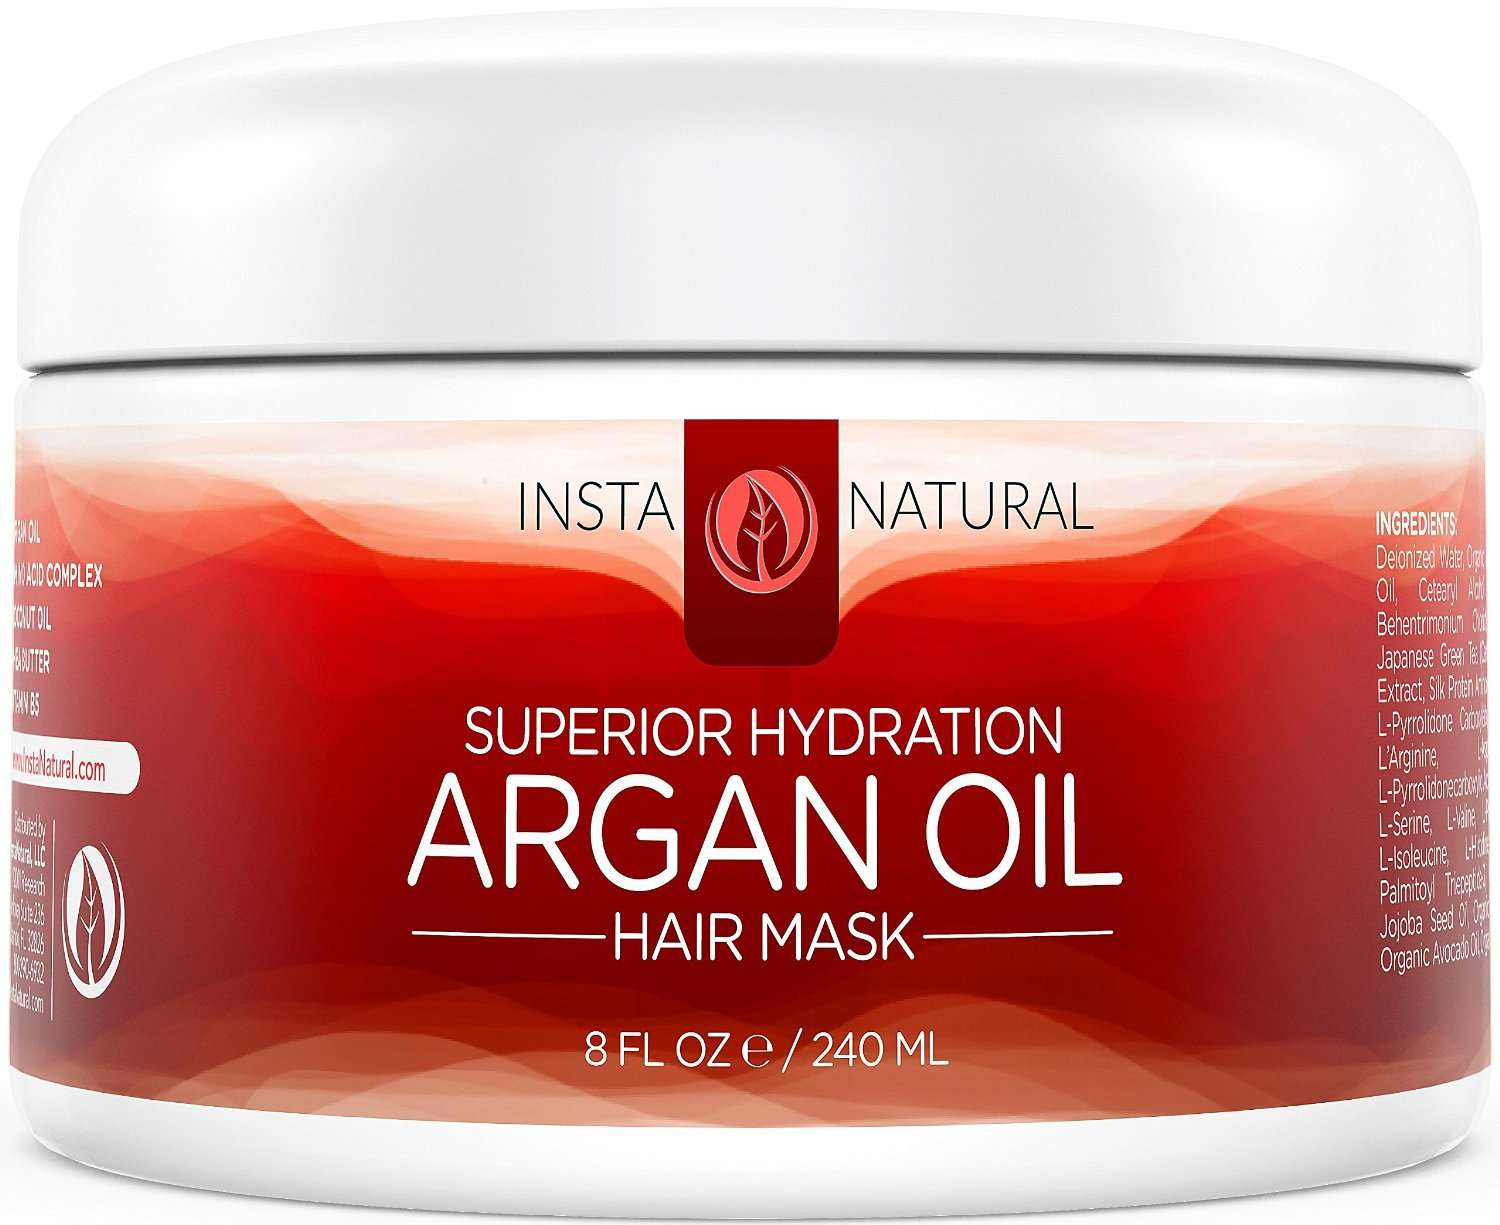 Argan Oil hair mask for straightenign hair